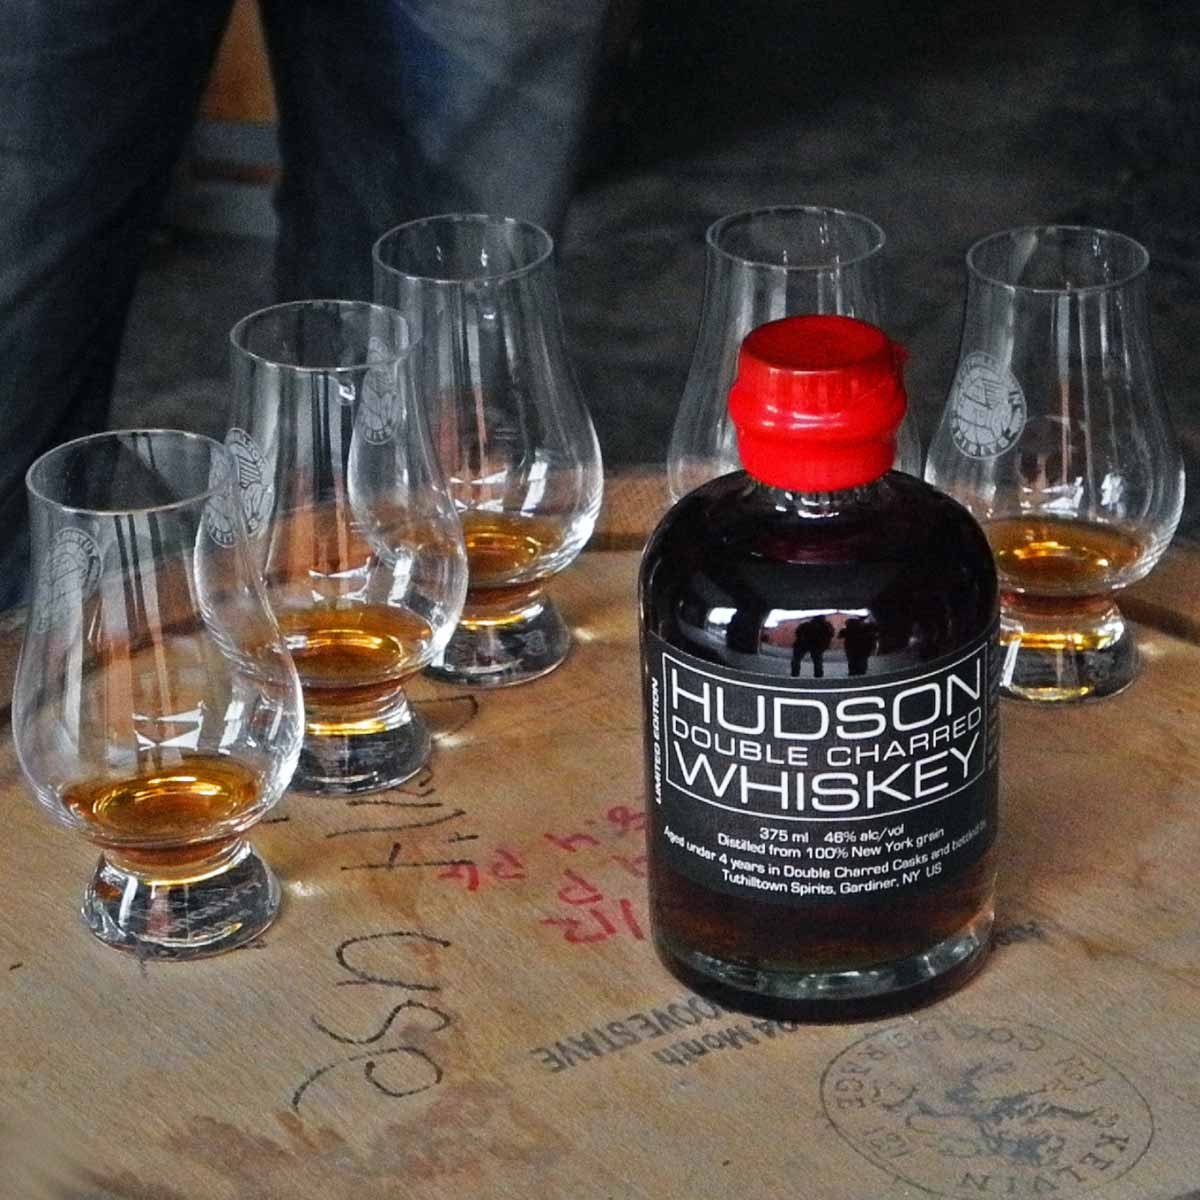 From the Ashes: Hudson Double Charred Whiskey